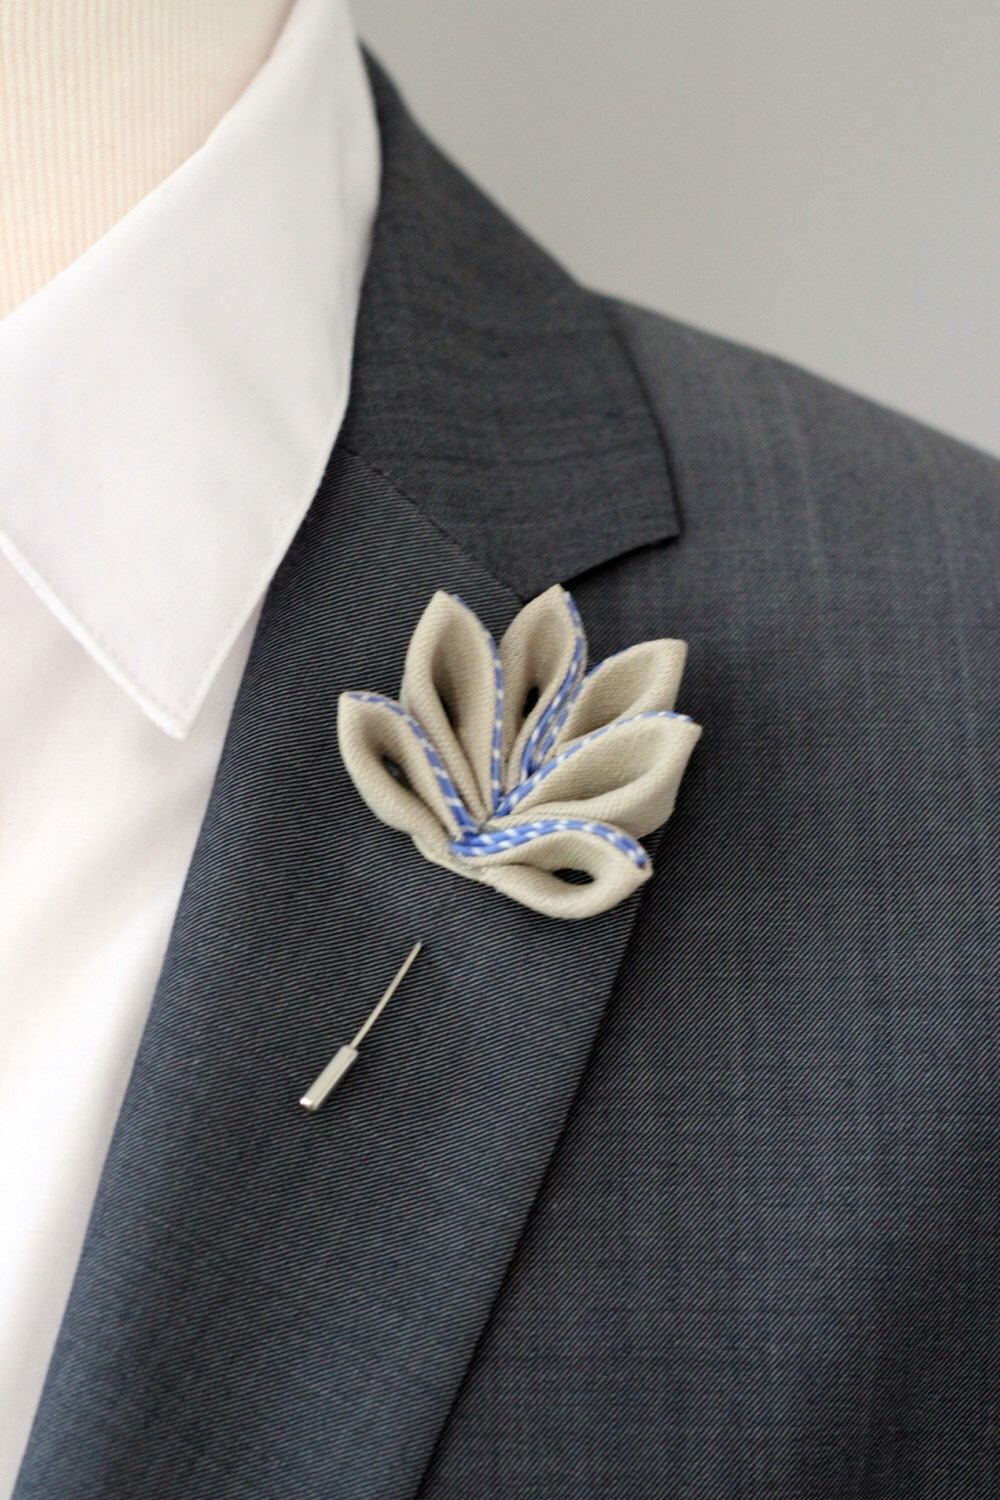 Mens jacket brooch - Maple Leaf Lapel Pin Mens Lapel Flower Boutonniere Lapel Flower Pin Flower Lapel Pin Mens Gift Mens Pocket Square Rustic Boutonniere